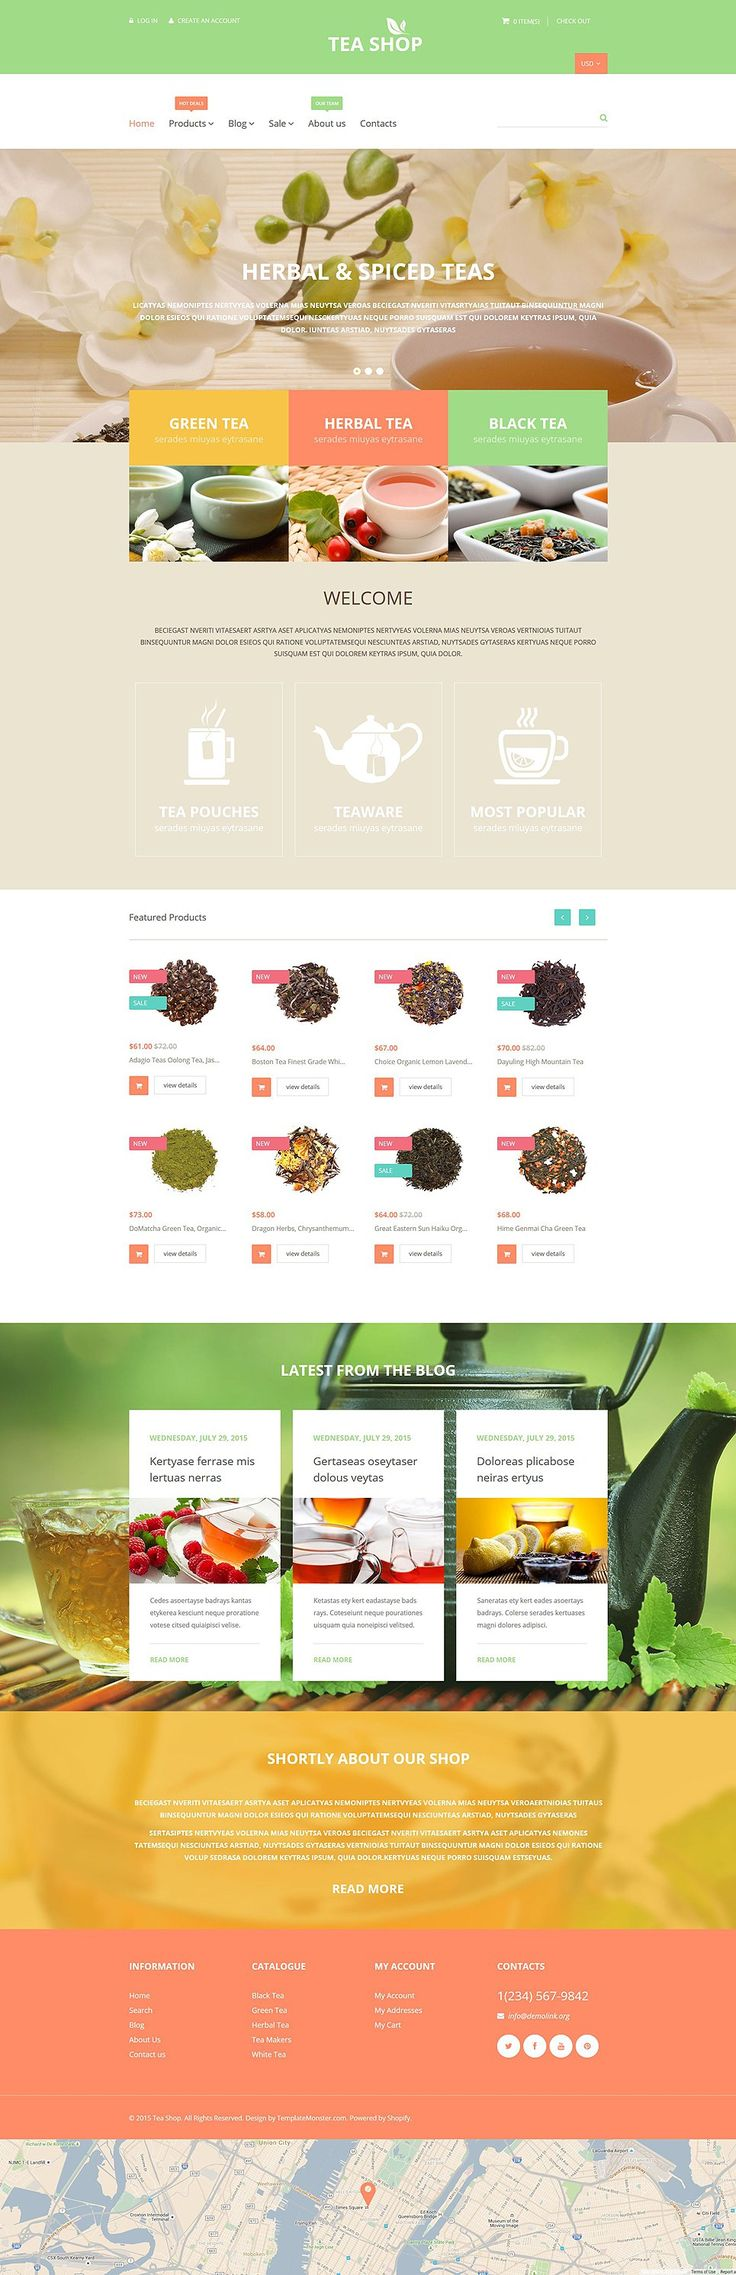 19+ Awesome Themes for Selling Beverages/Drinks (Coffee, Tea, Alcohol Store Shopify Themes) - Tea Shop (Shopify theme) Item Picture